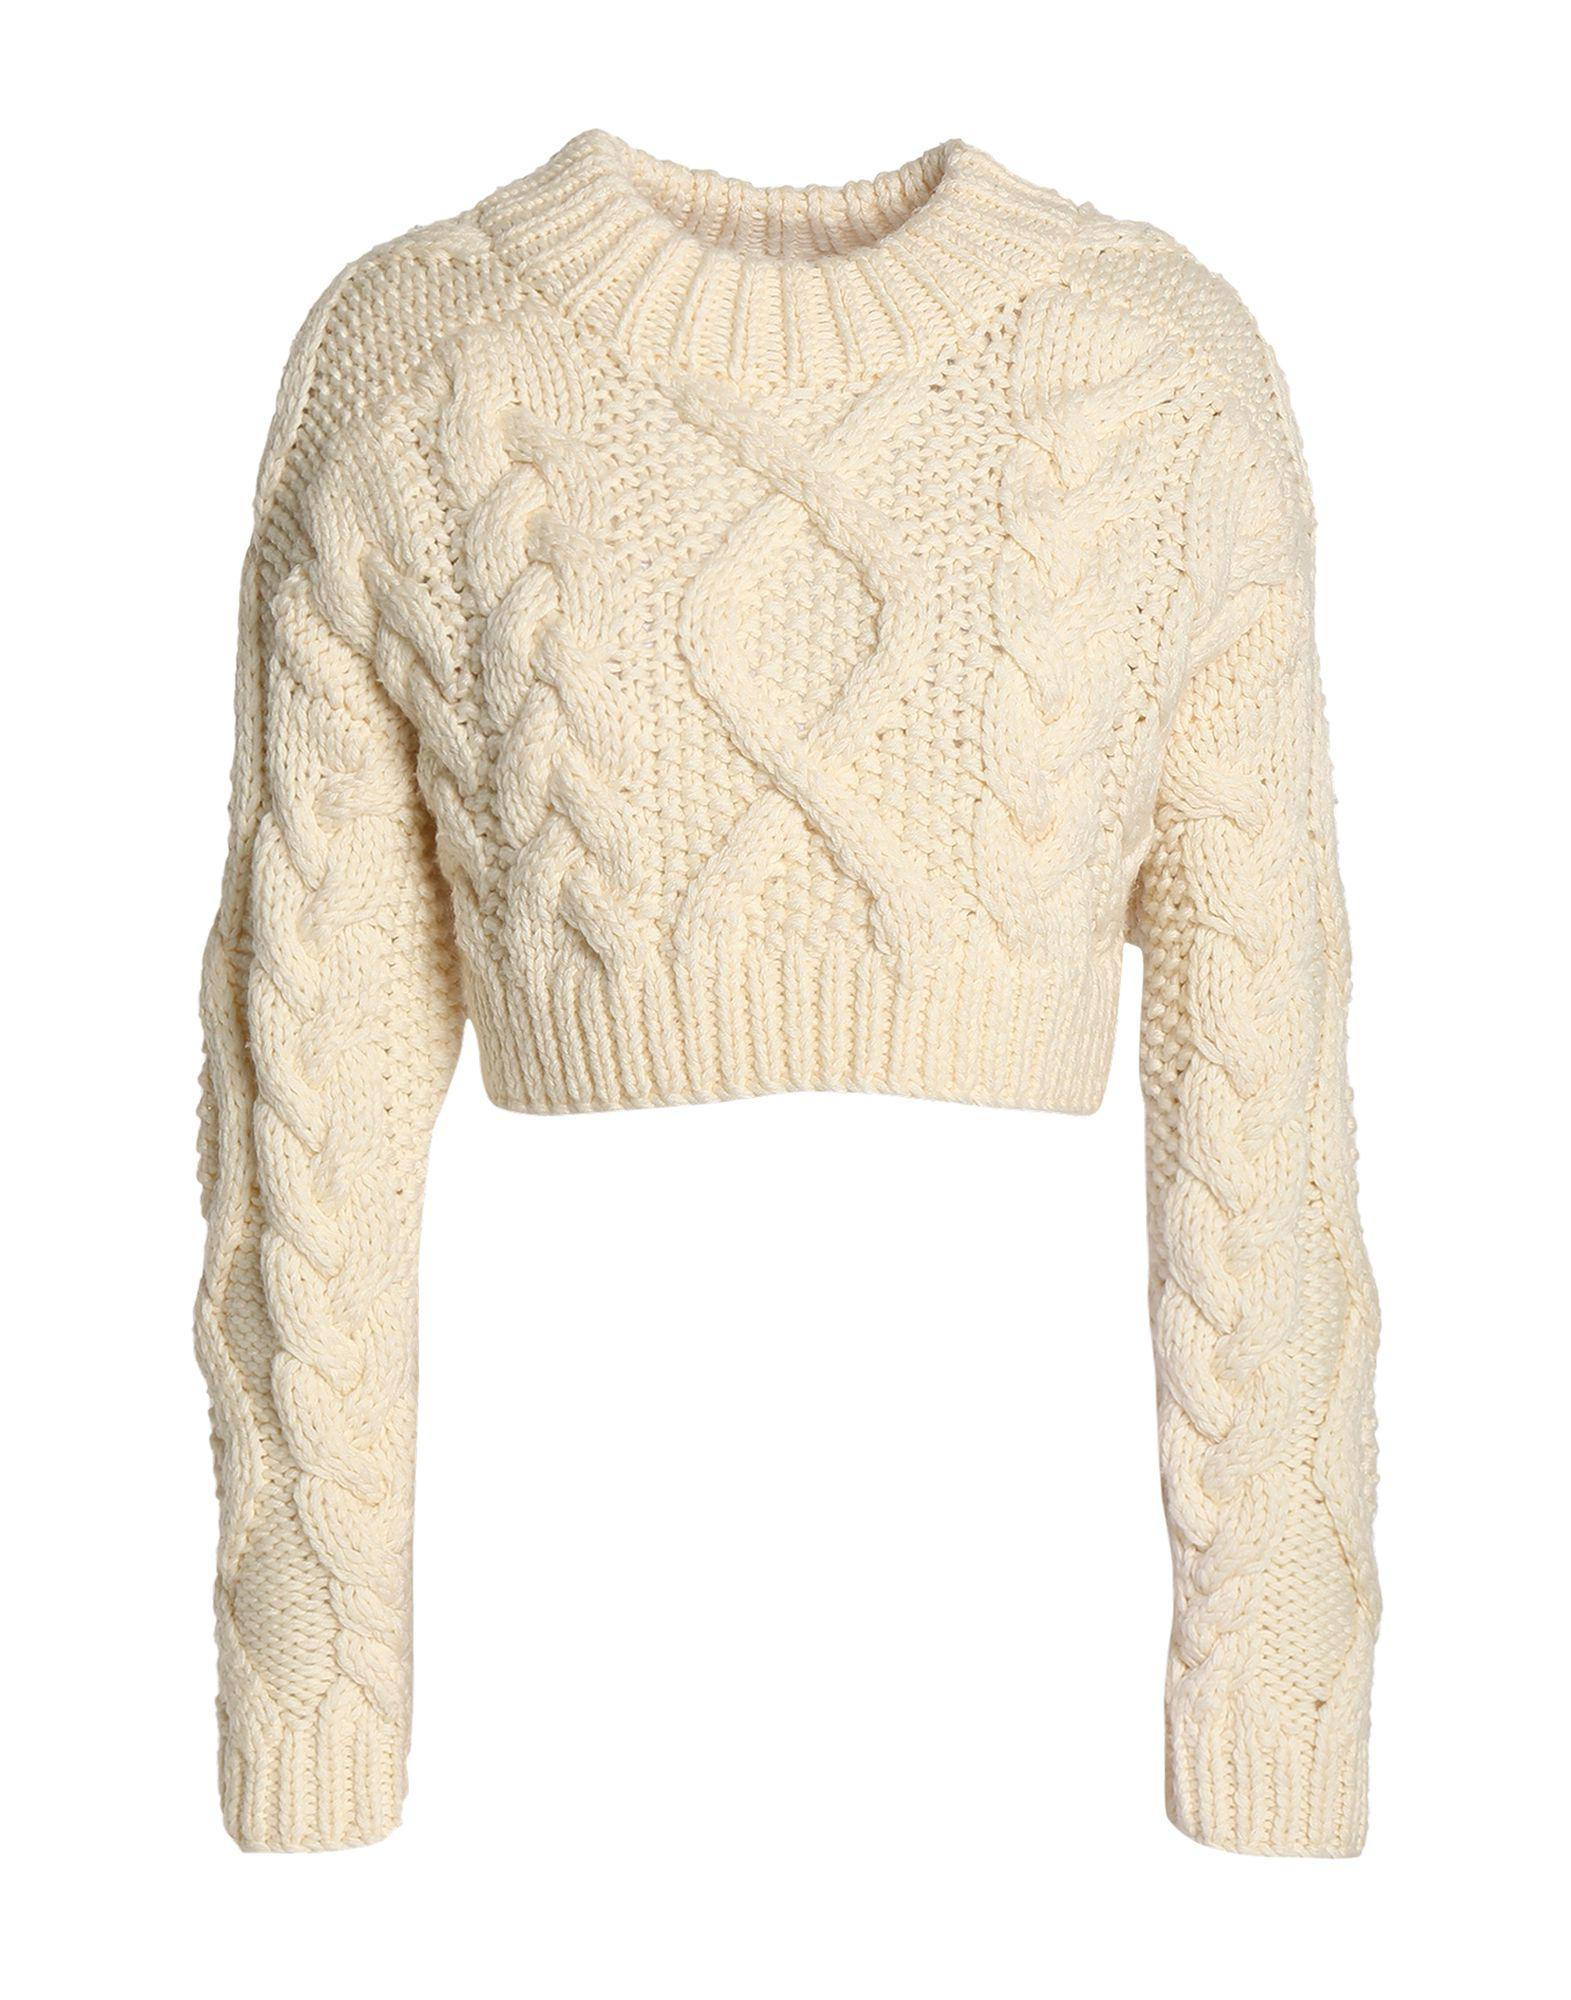 44494cab4af Lyst - DKNY Sweater in White